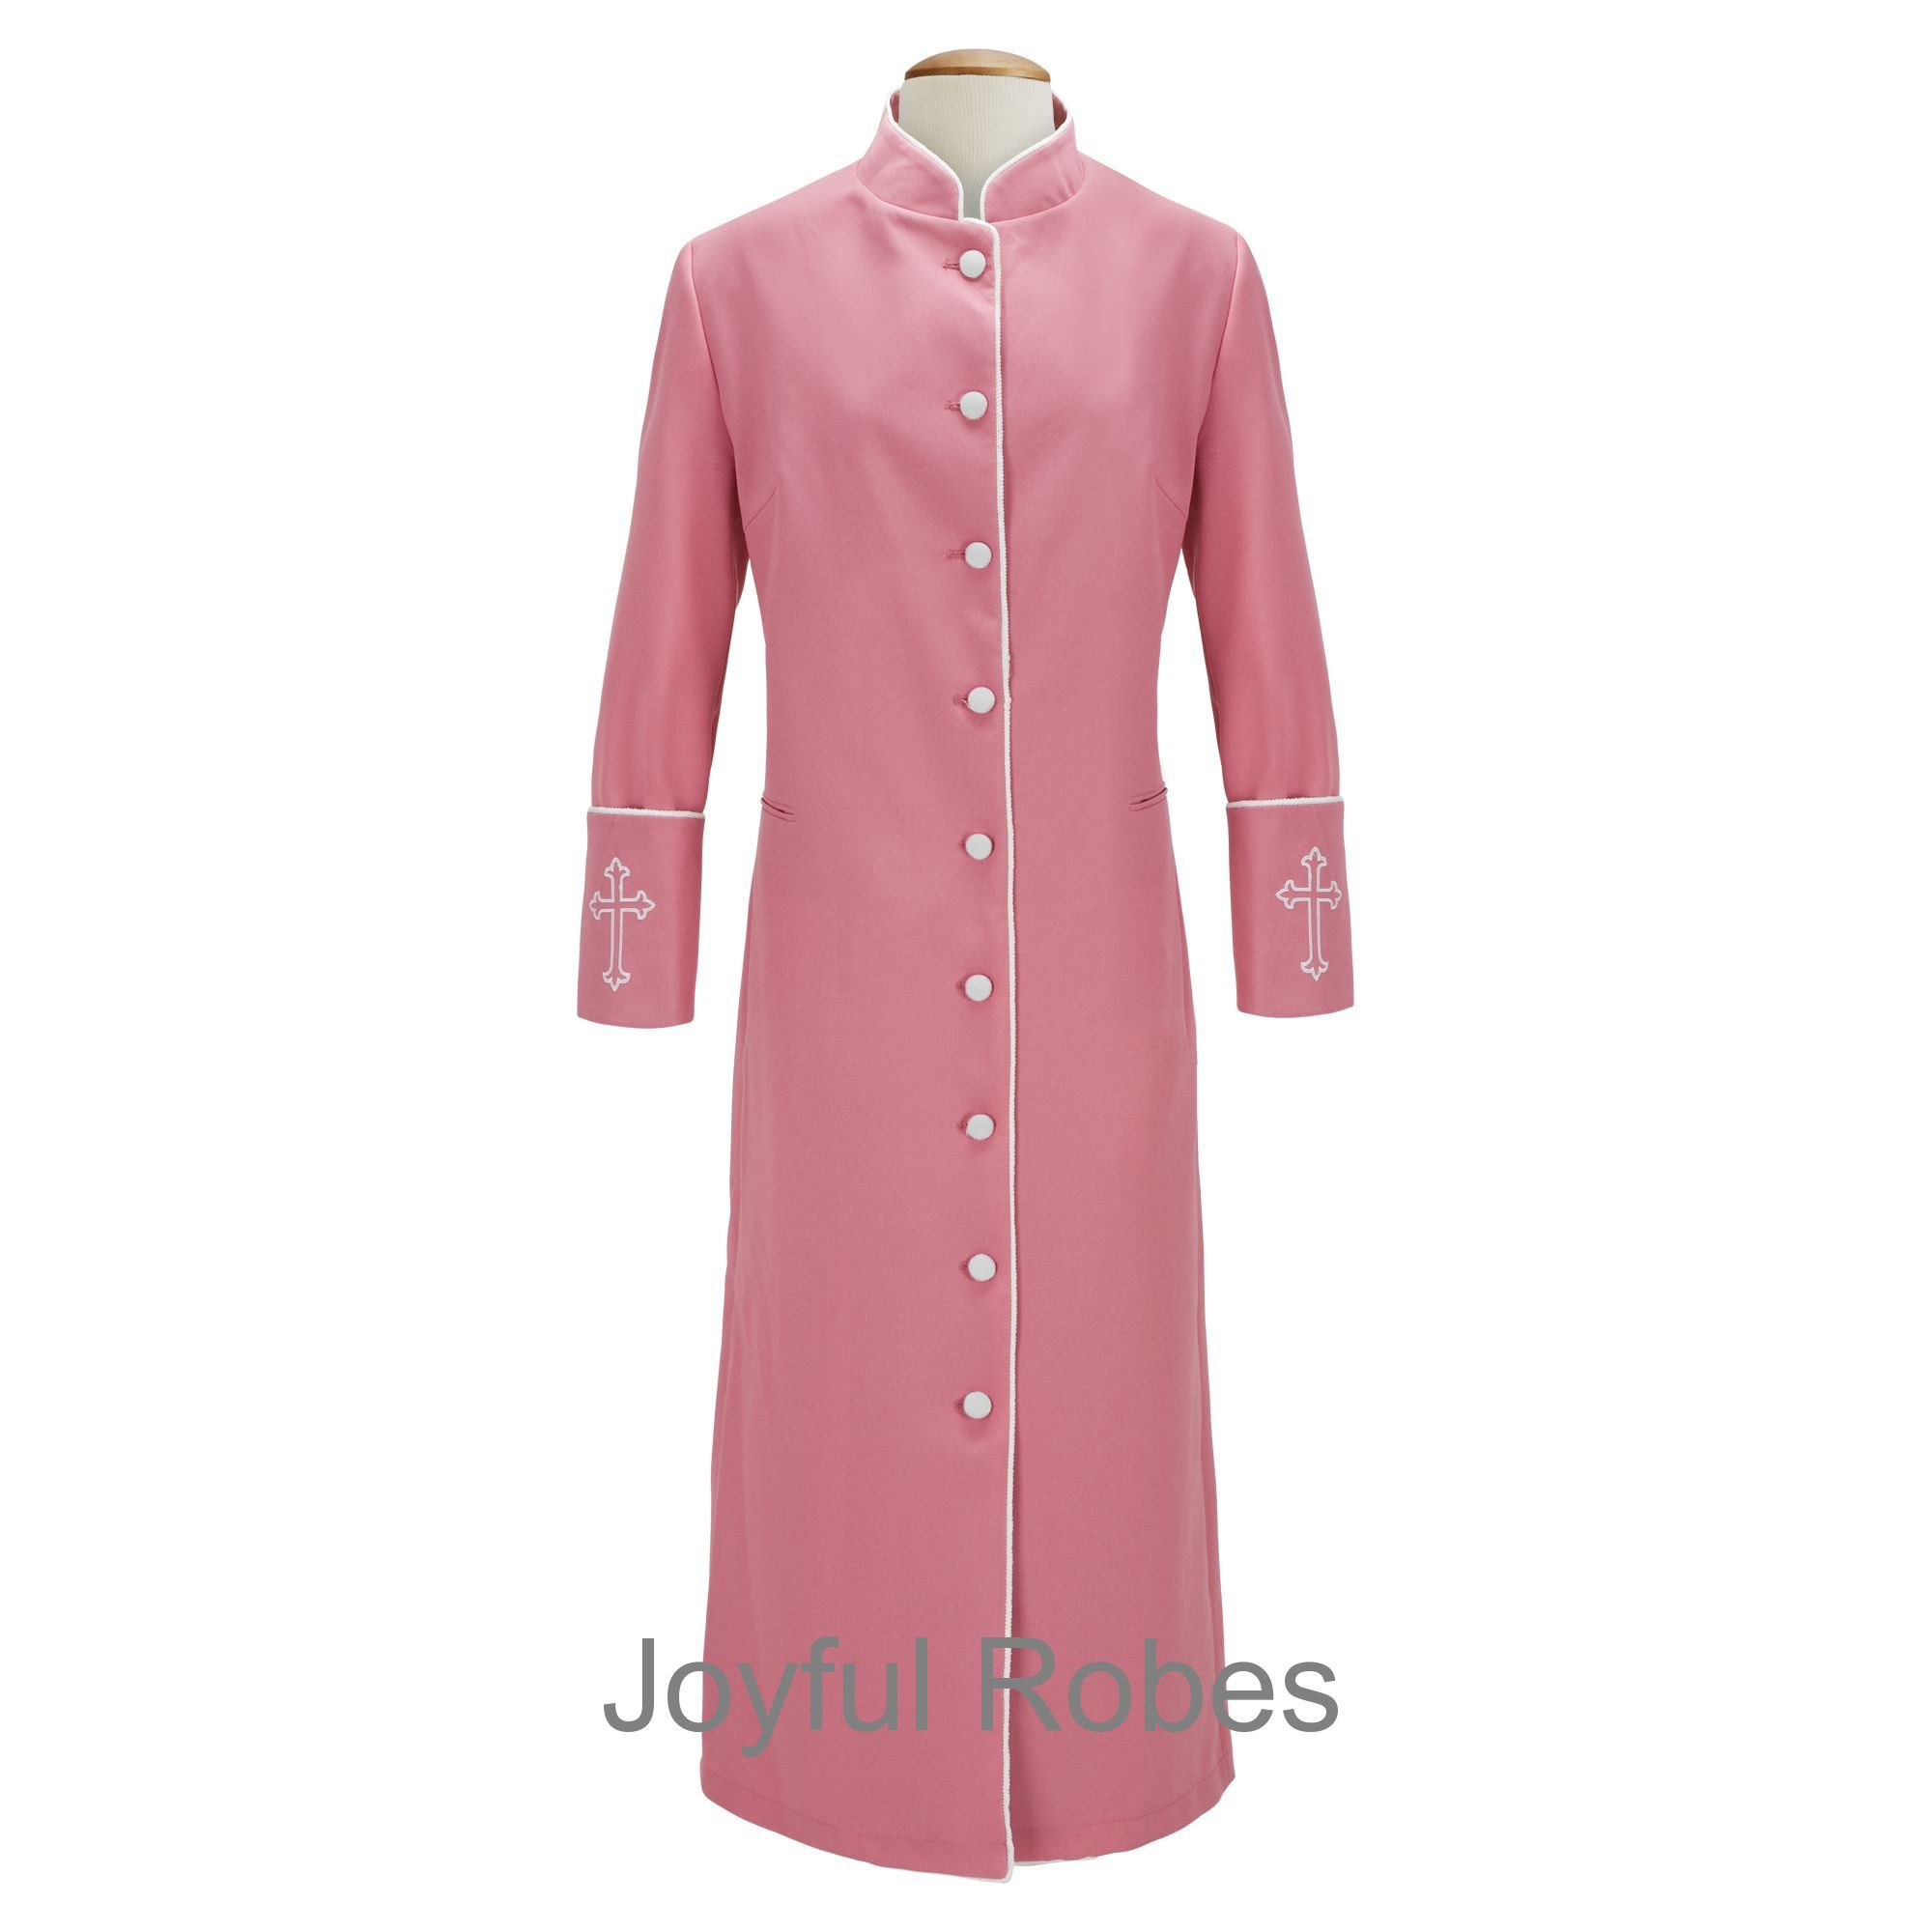 209 W. Women's Clergy/Pastor Robe - Rose/White